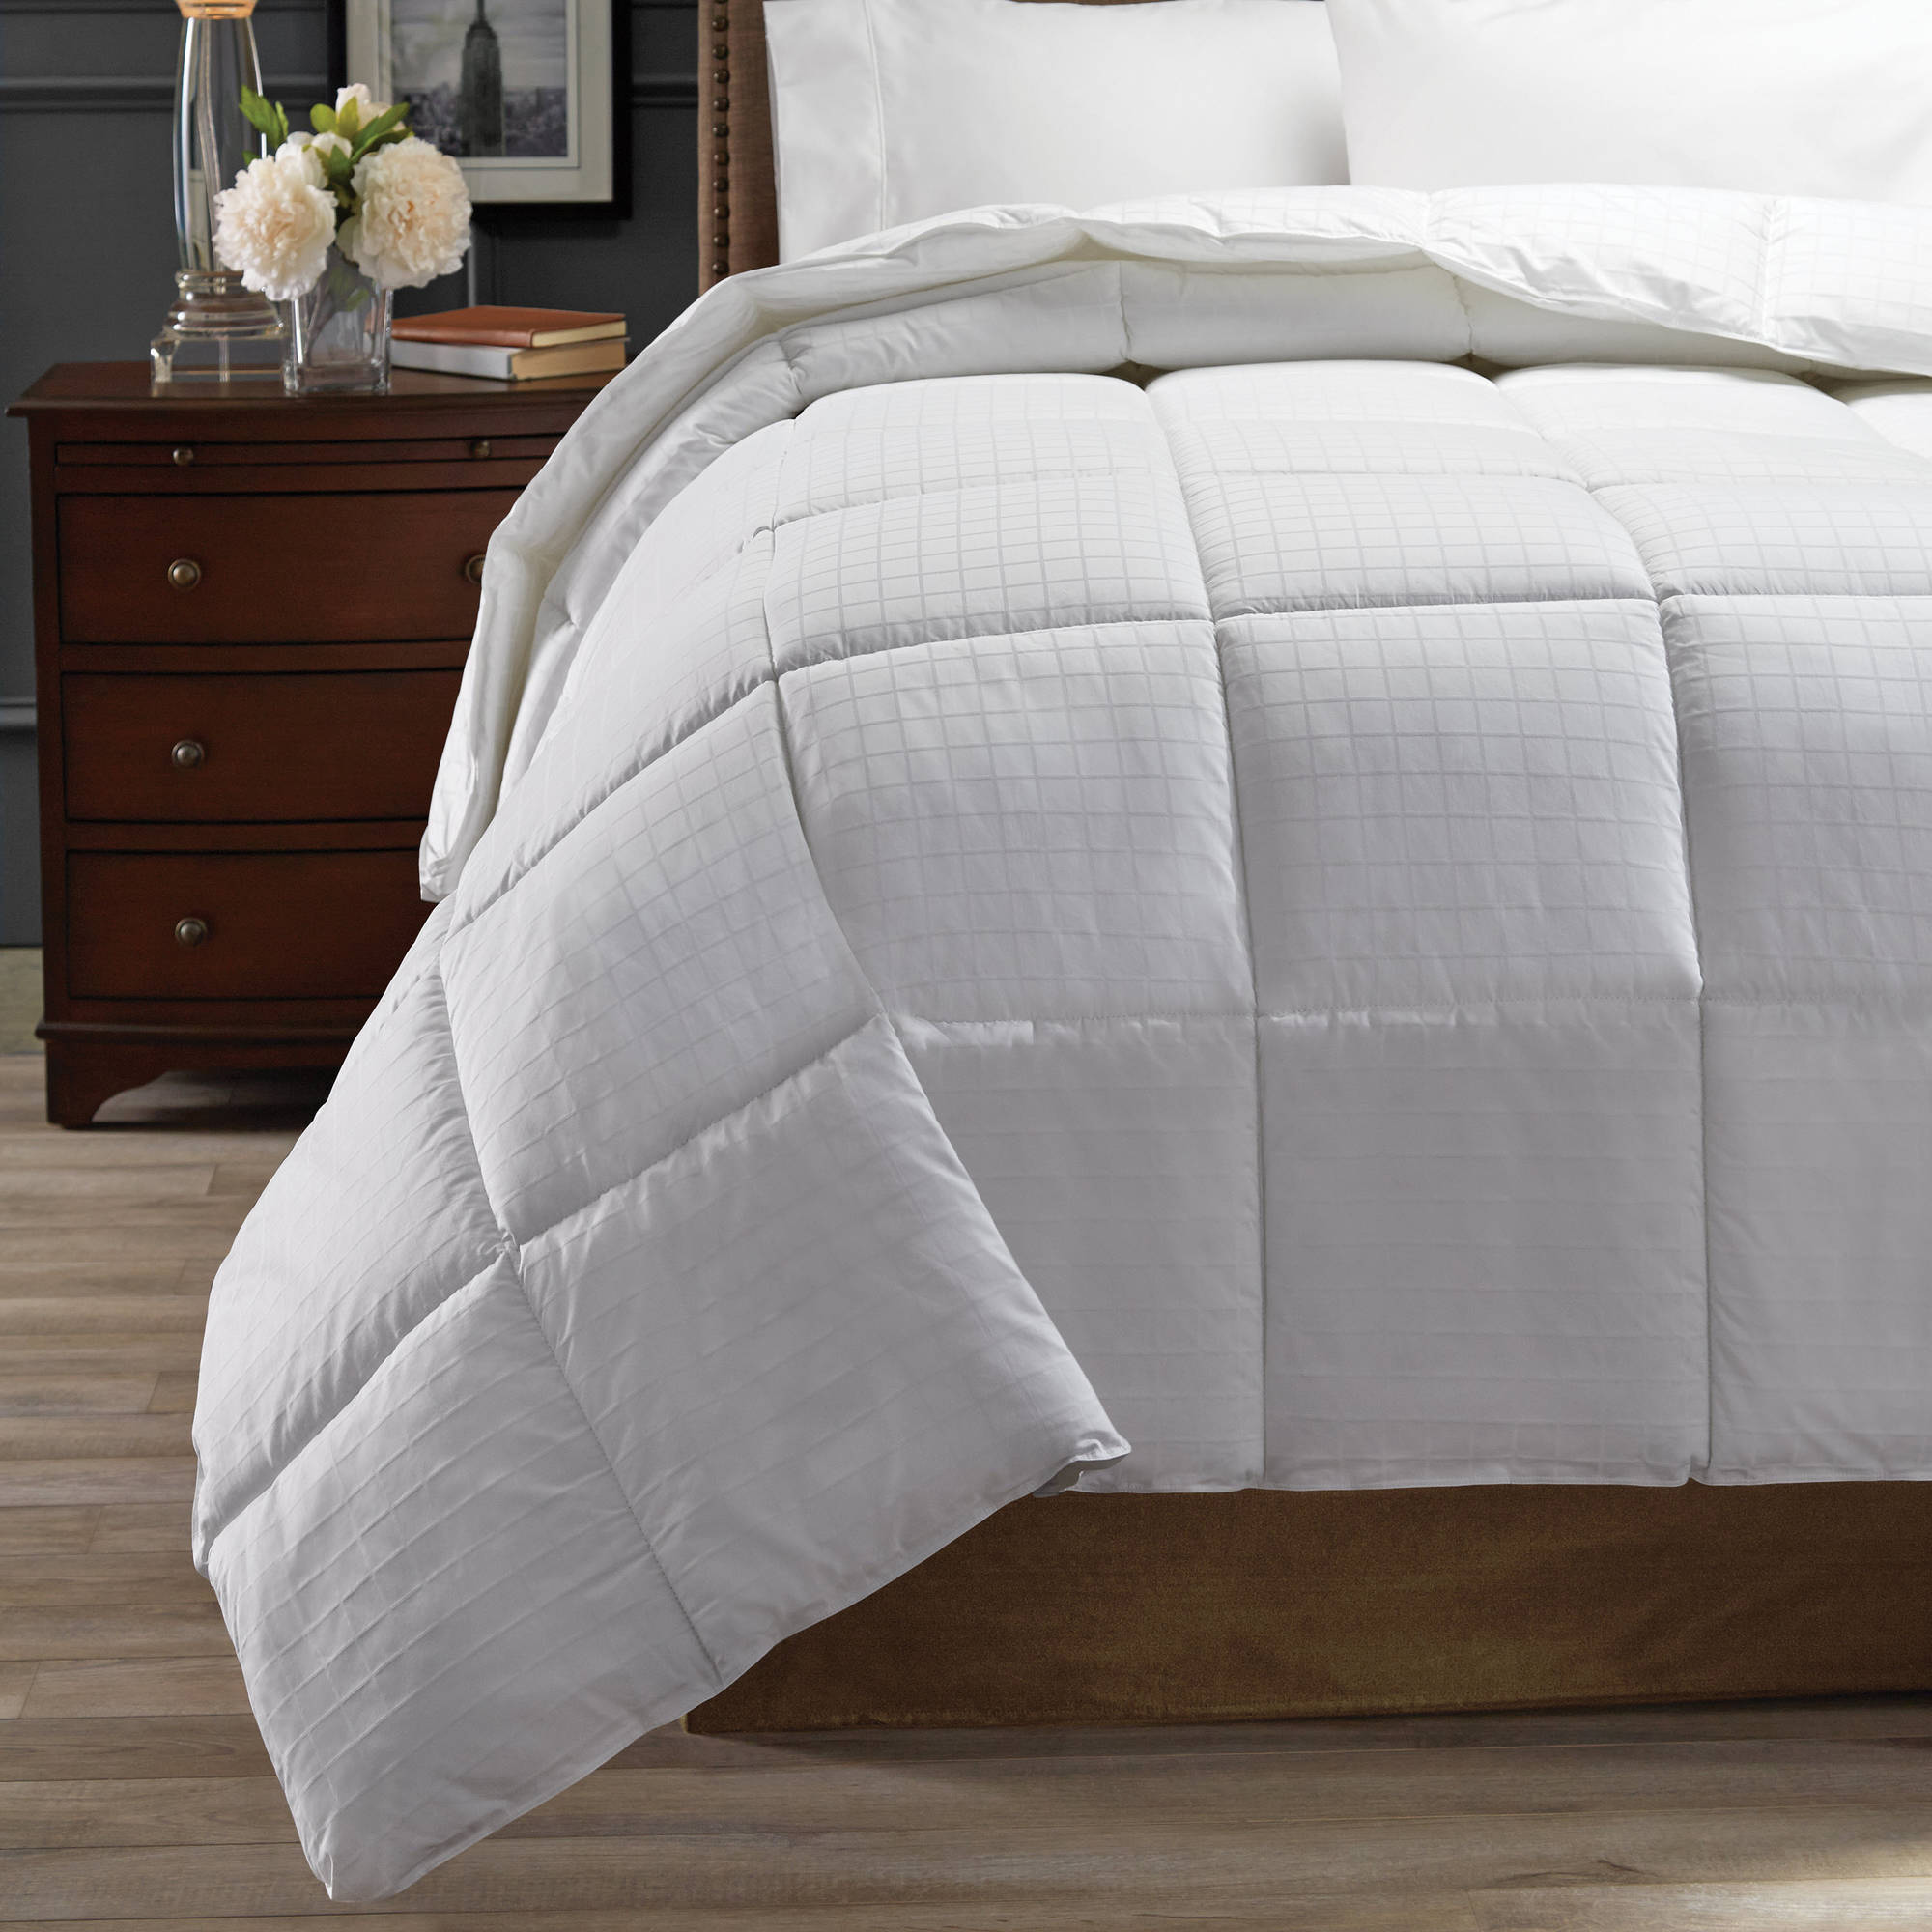 Hotel Style Cotton Heavy Warmth Down Alternative Comforter, 1 Each - Full/queen